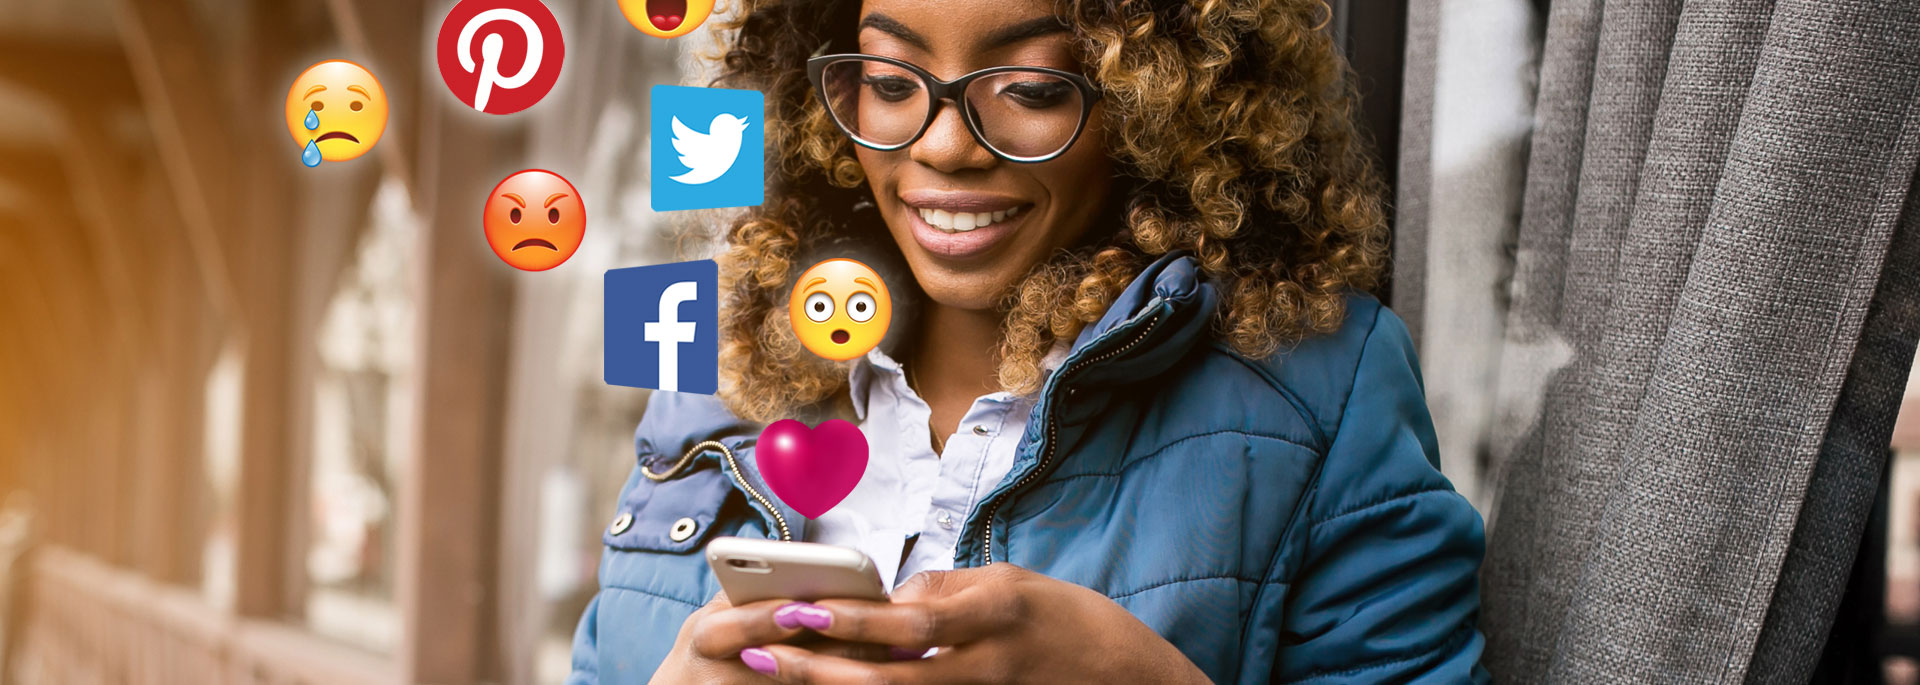 New Facebook Feed, Twitter 280, Pinterest Pincodes and Snapchat Redesign: The 4 Can't-Miss Social Content Marketing Updates to Kick Off 2018